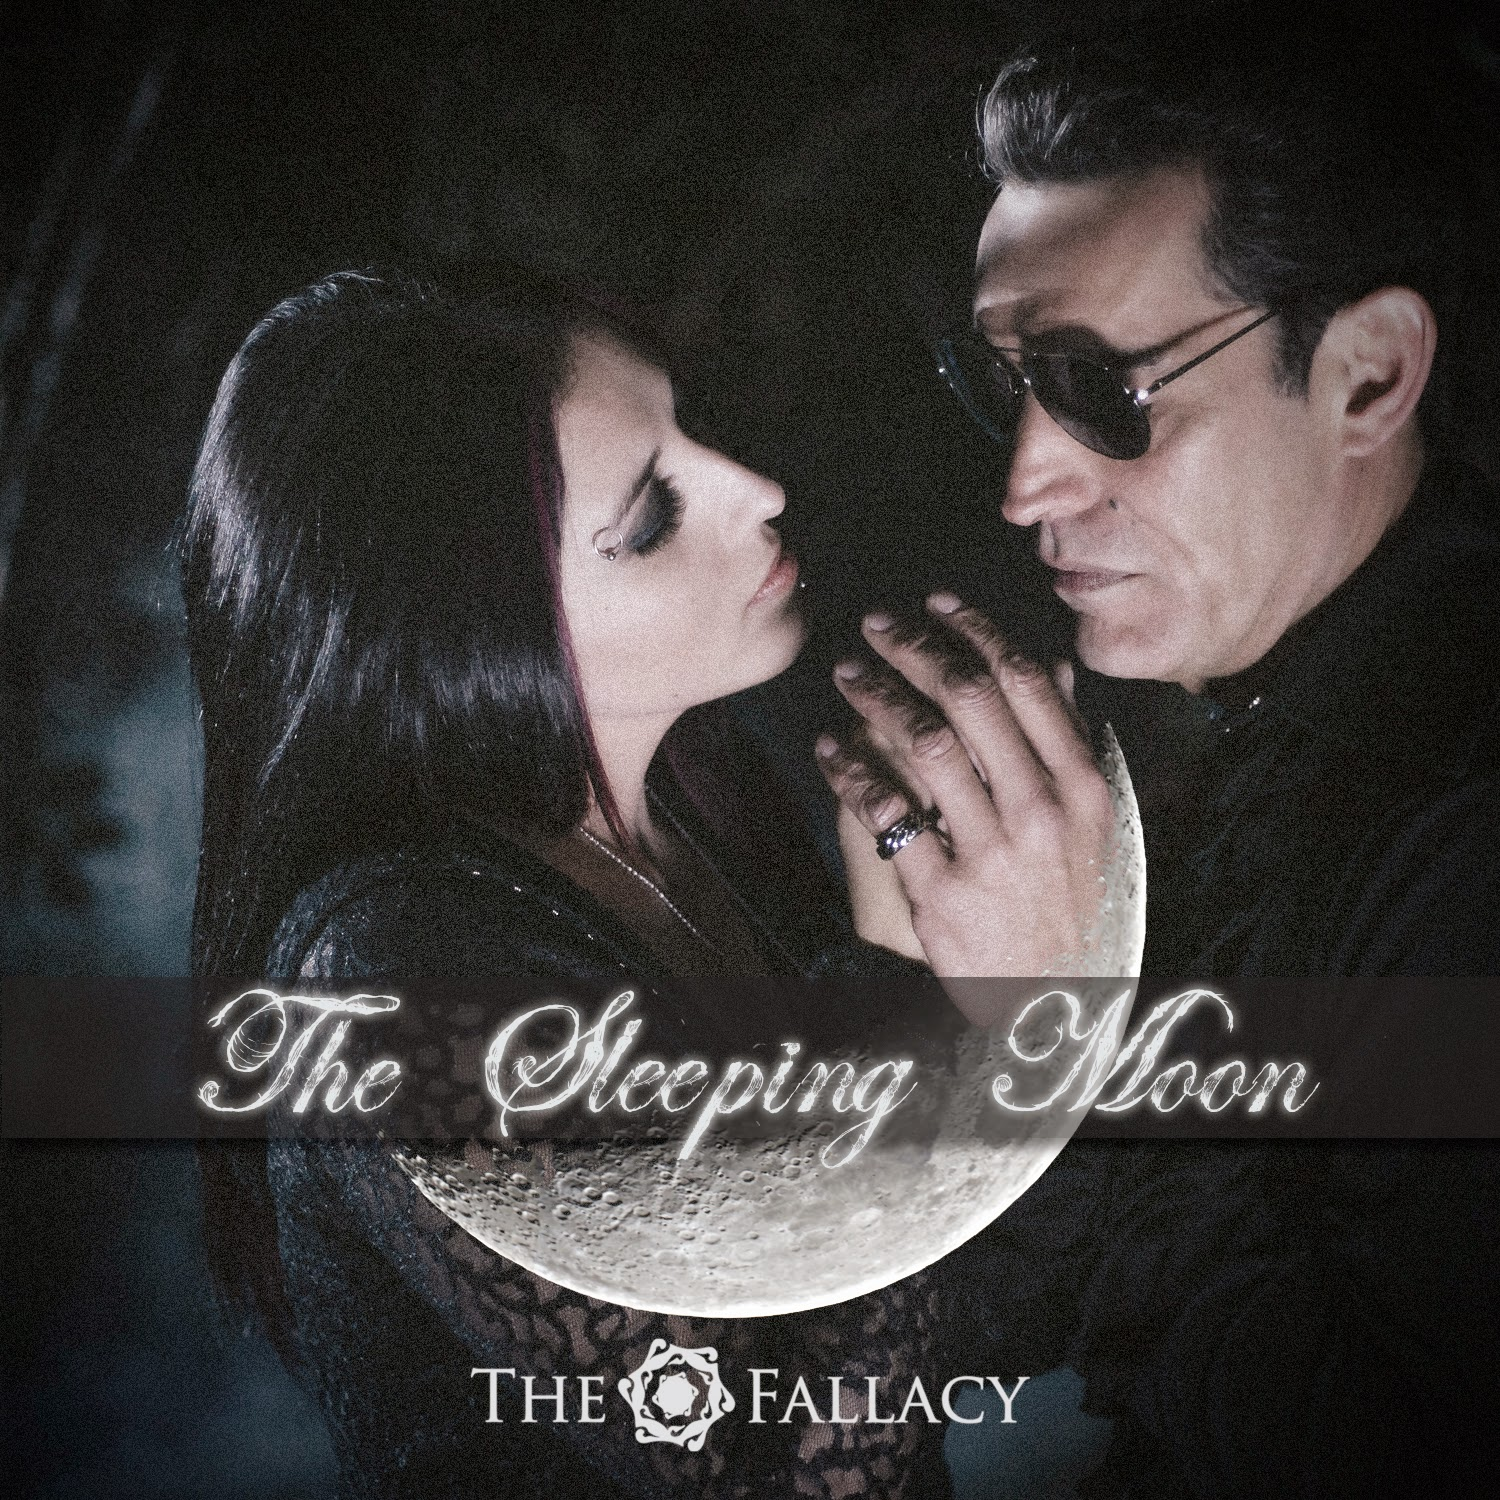 The Fallacy - The Sleeping Moon (2013)